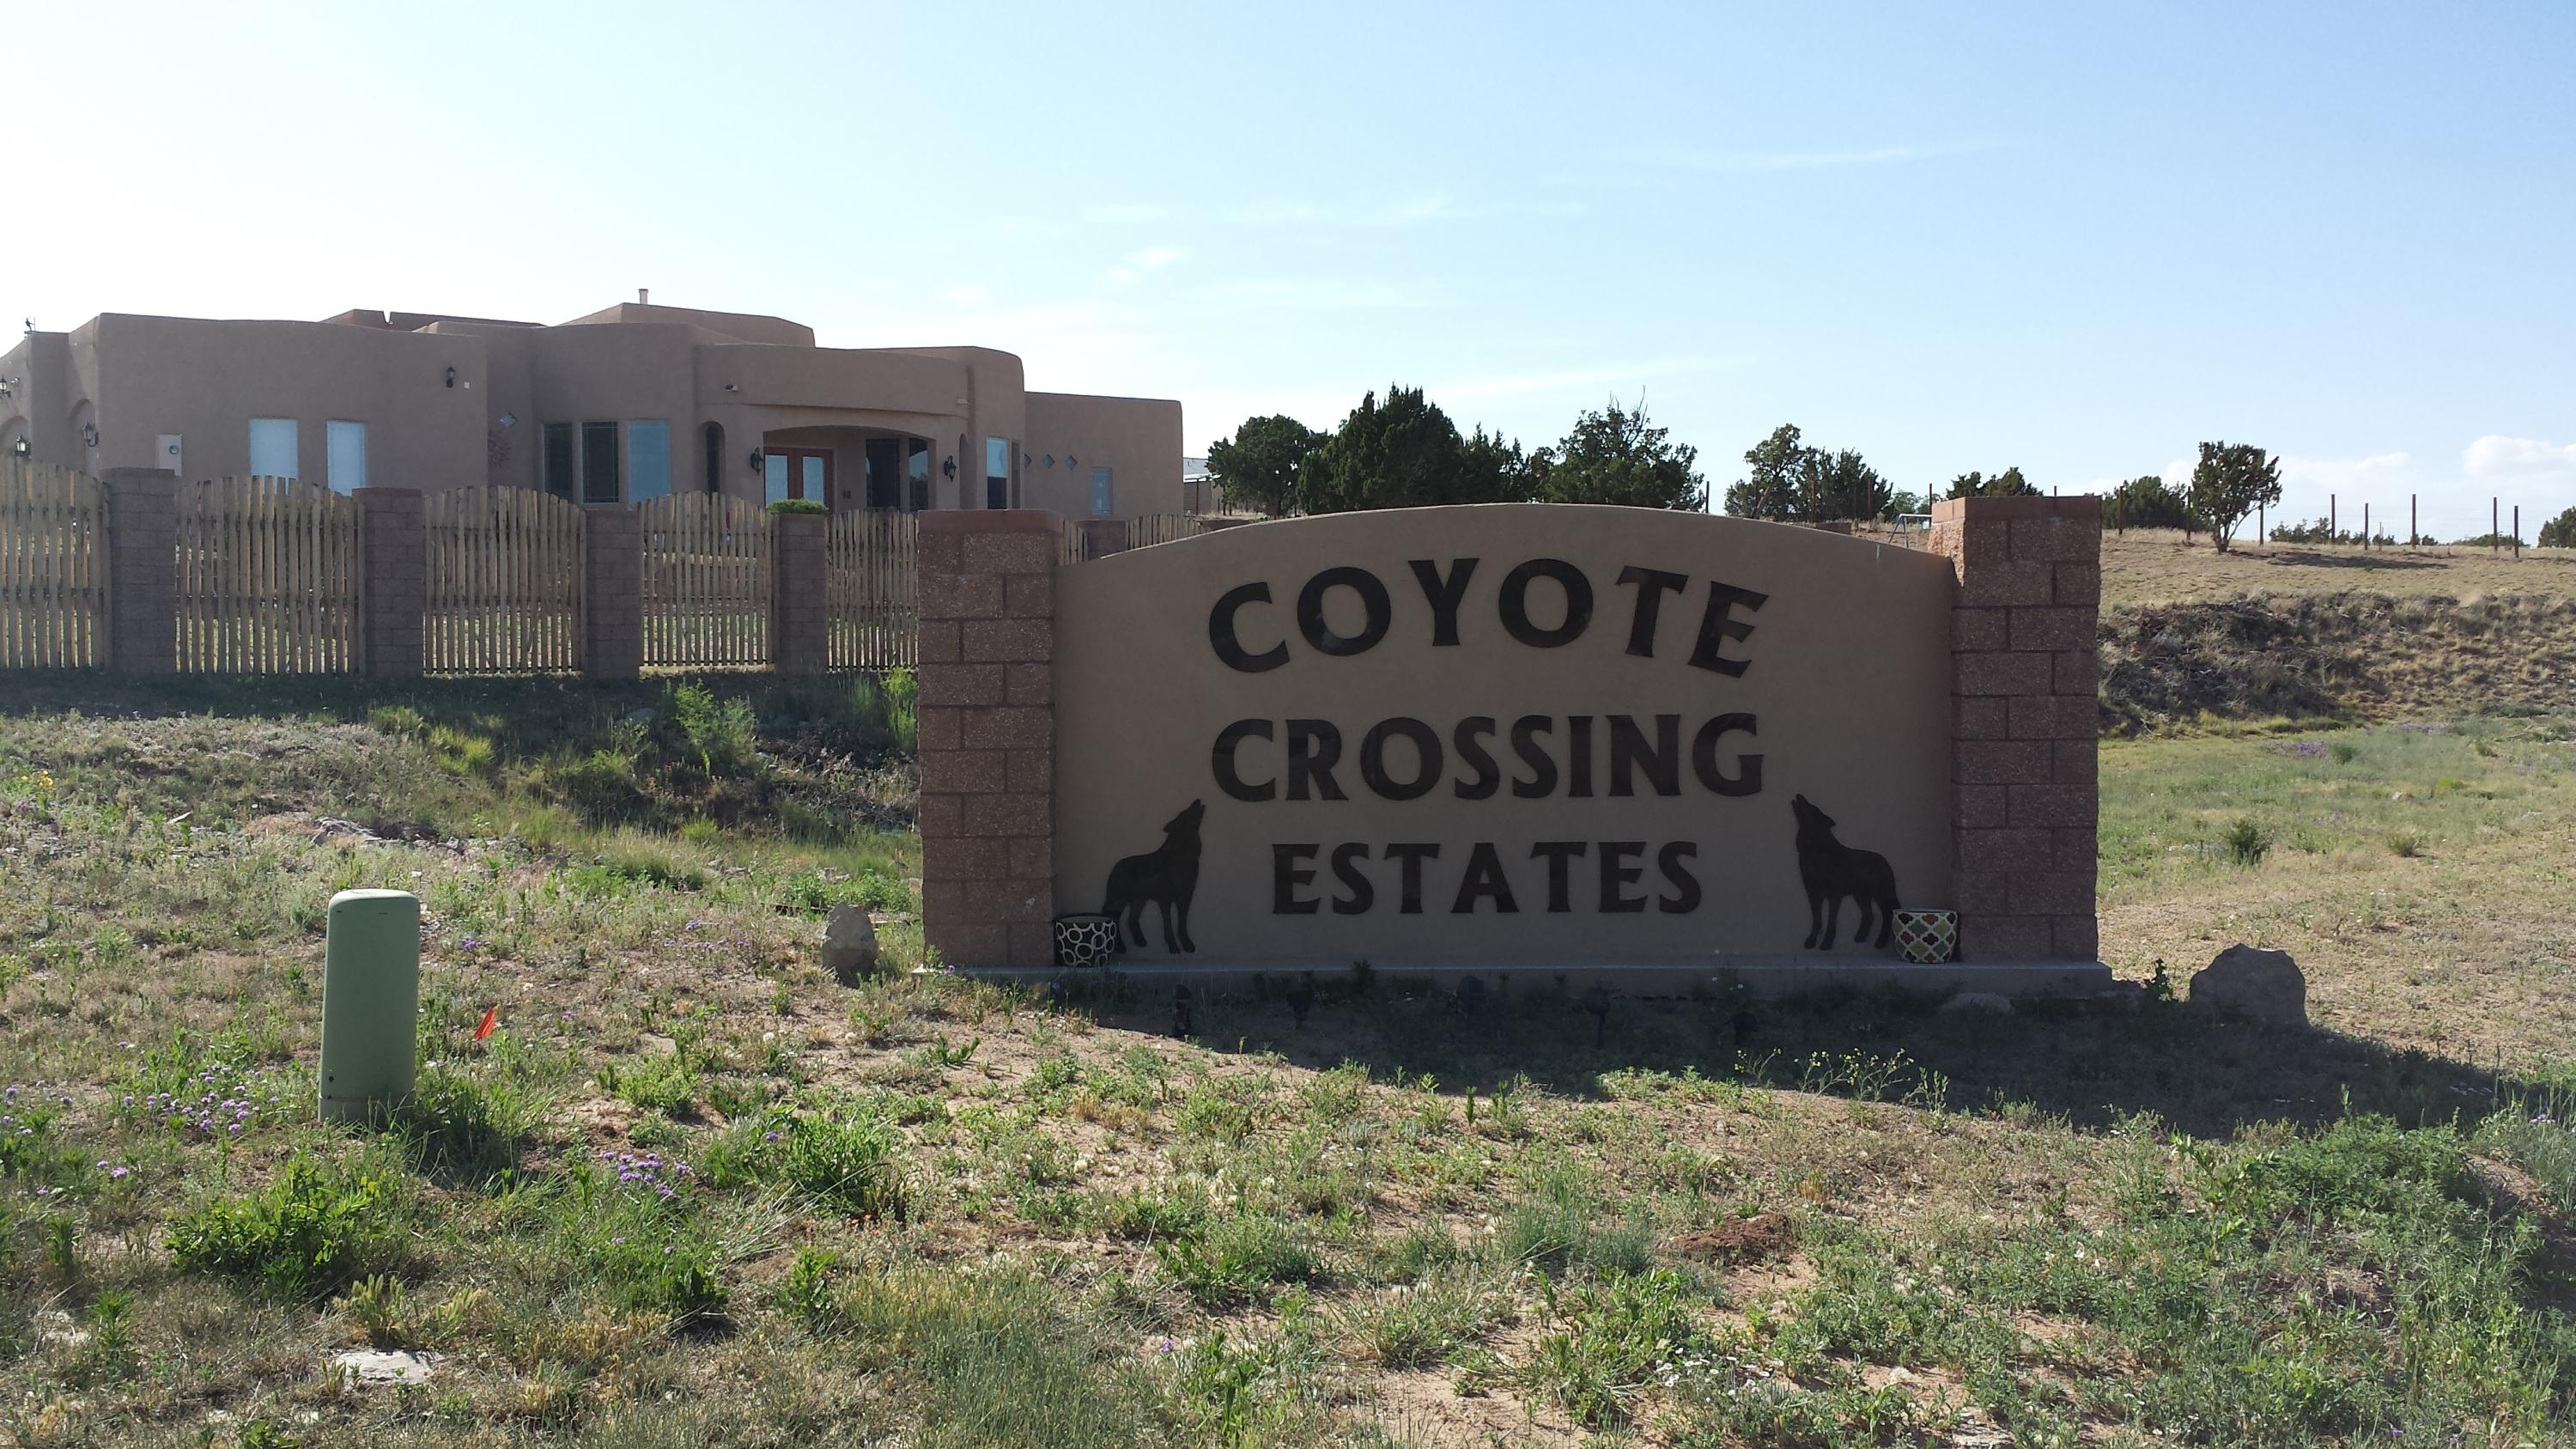 36 Camino Coyote, Edgewood, NM 87015 - Edgewood, NM real estate listing